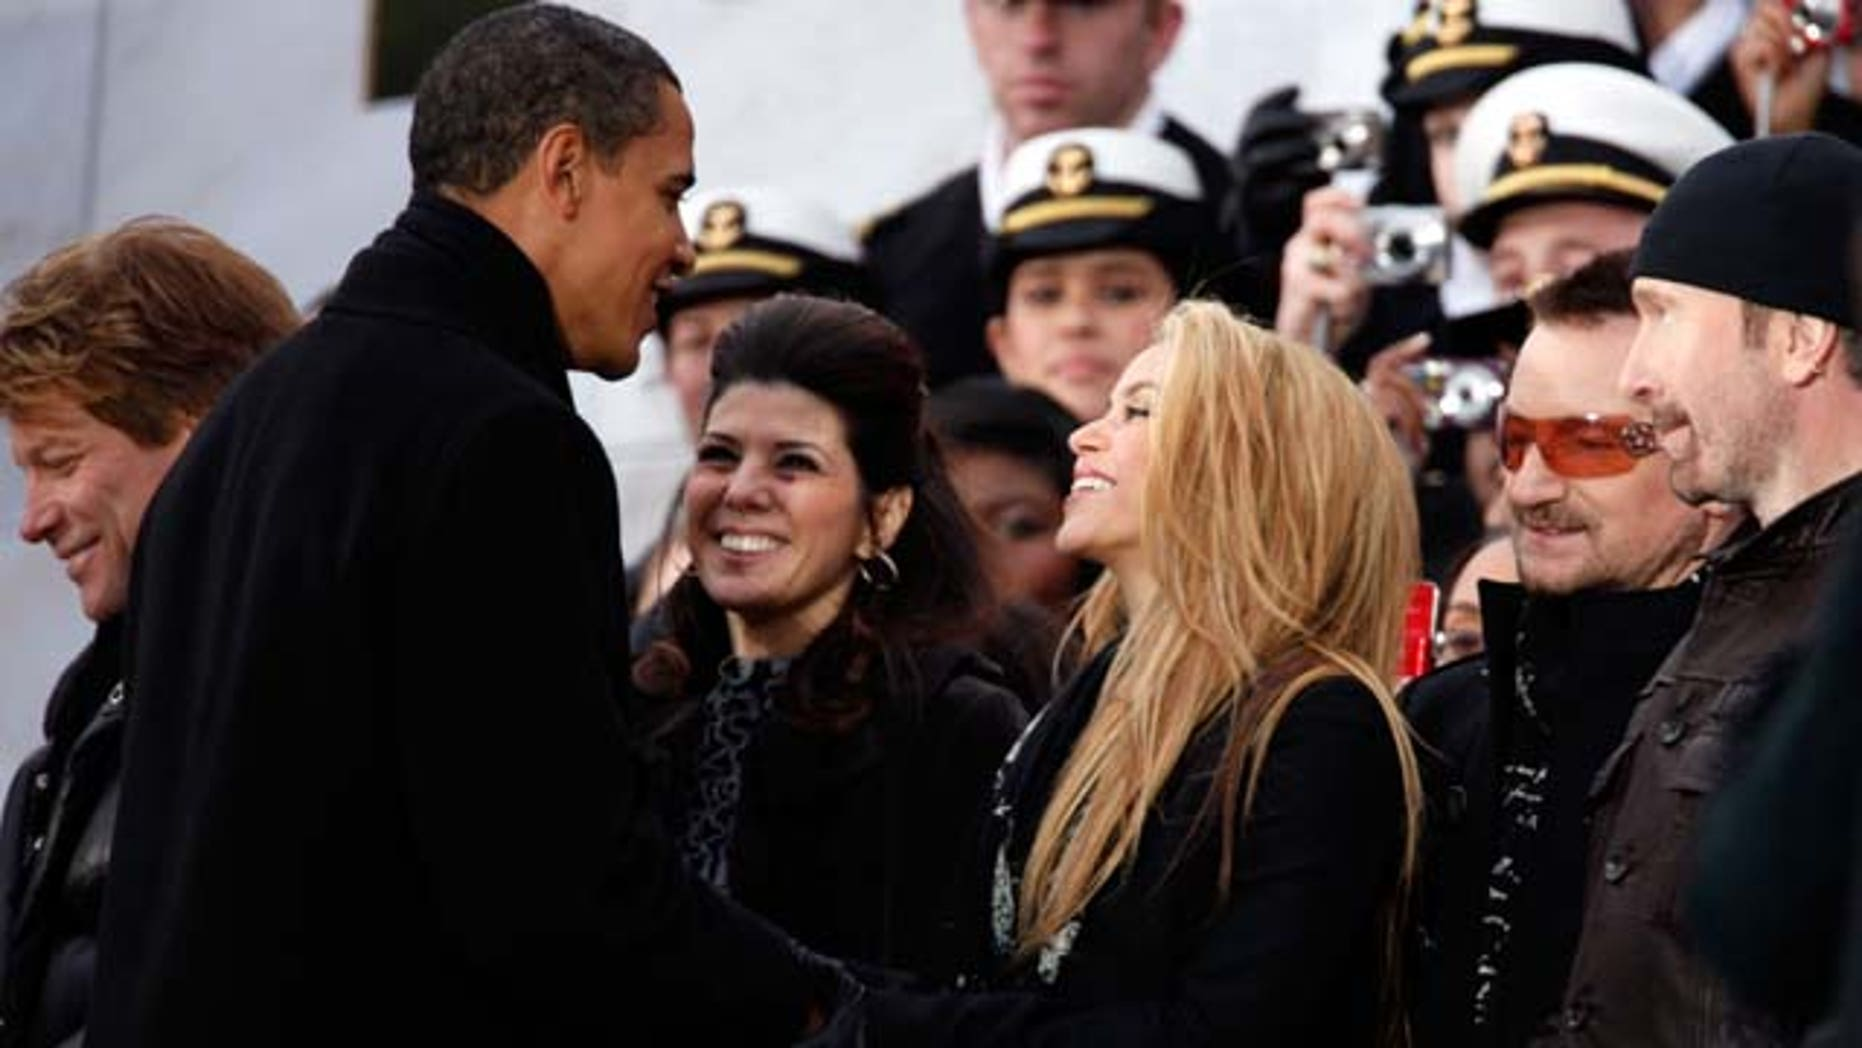 January 18, 2009: U.S. President-elect Barack Obama shakes hands with Shakira and Marisa Tomei, Bono and the Edge in front of the Lincoln Memorial during the 'We Are One: The Obama Inaugural Celebration At The Lincoln Memorial' at the National Mall in Washington, DC. The event includes a diverse array of talent featuring both musical performances and historical readings and an appearance by U.S. President-elect Barack Obama.